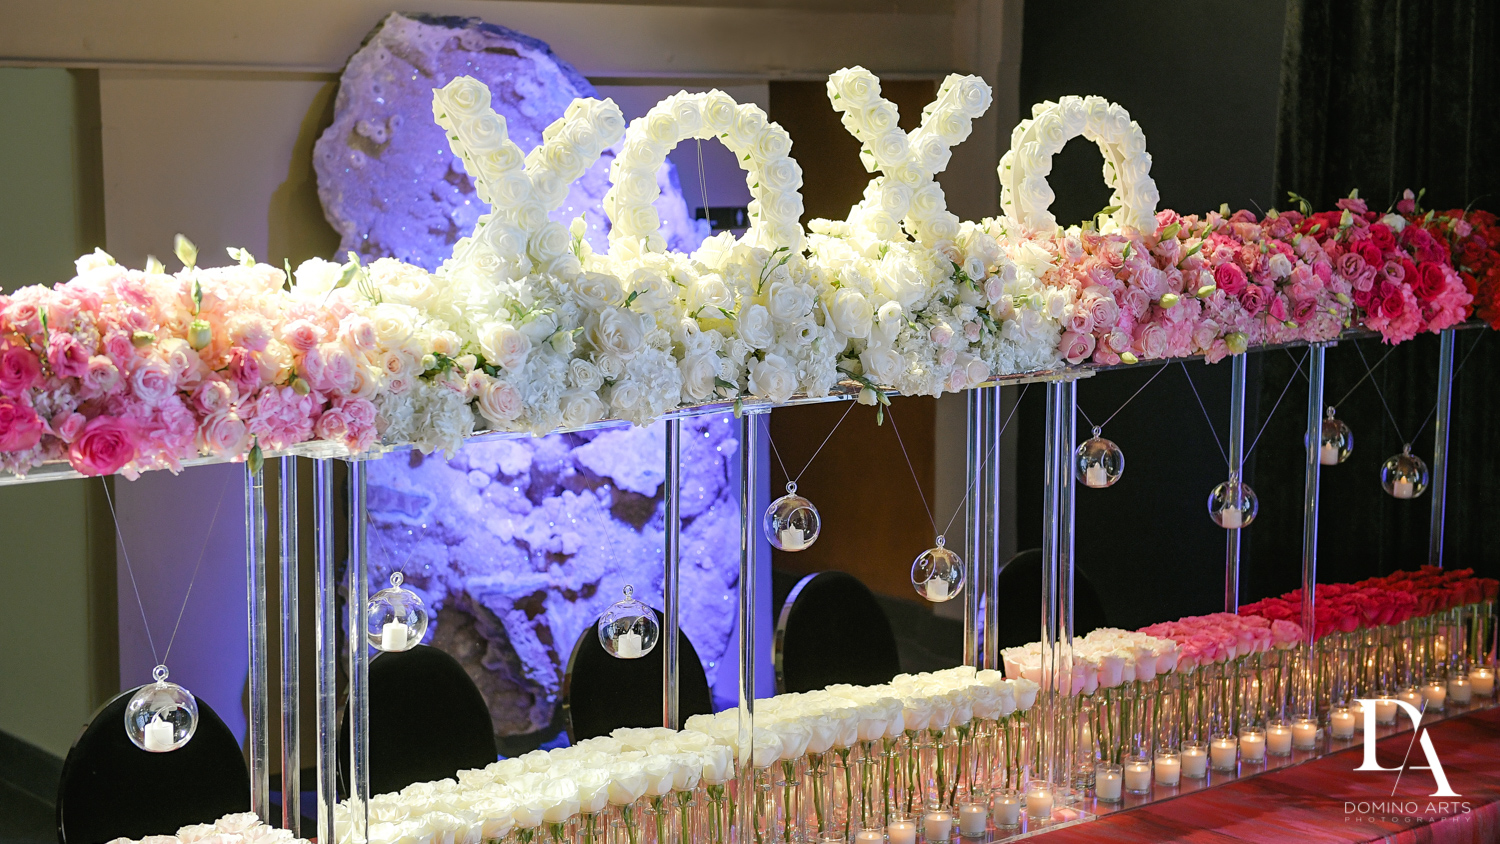 white rose decor at Fashion Theme Bat Mitzvah at Gallery of Amazing Things by Domino Arts Photography